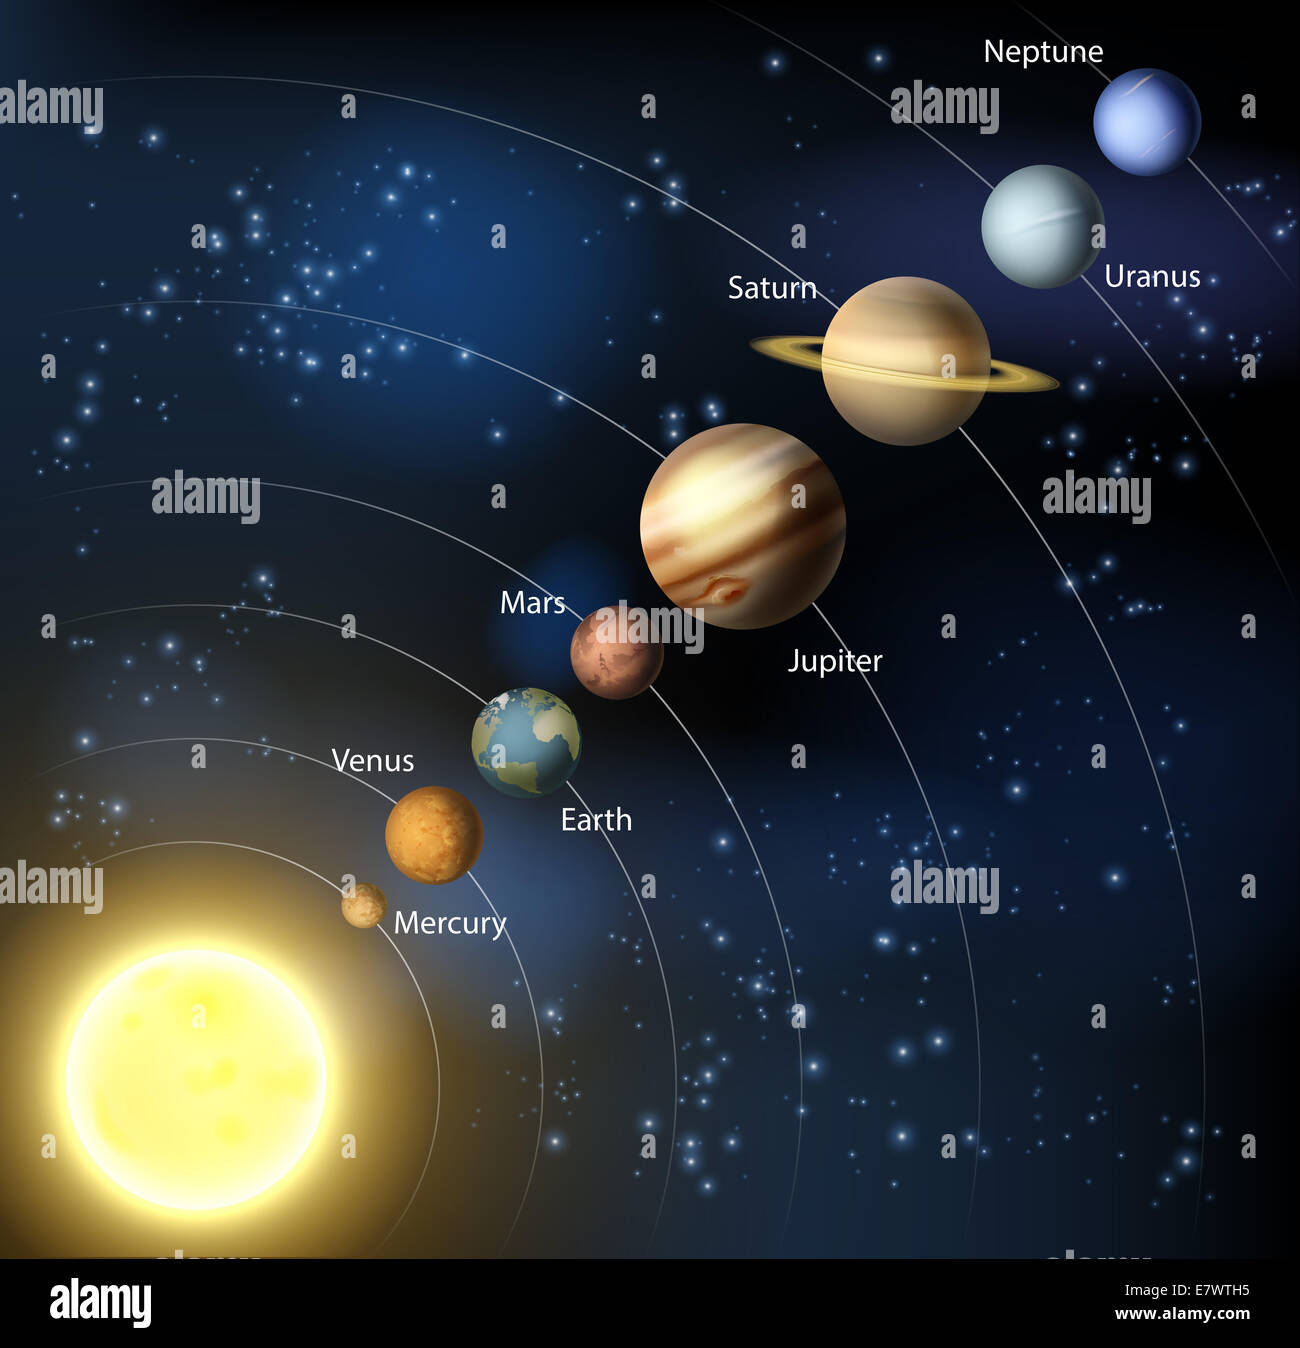 All Planets In The Solar System Revolve Around | www ...